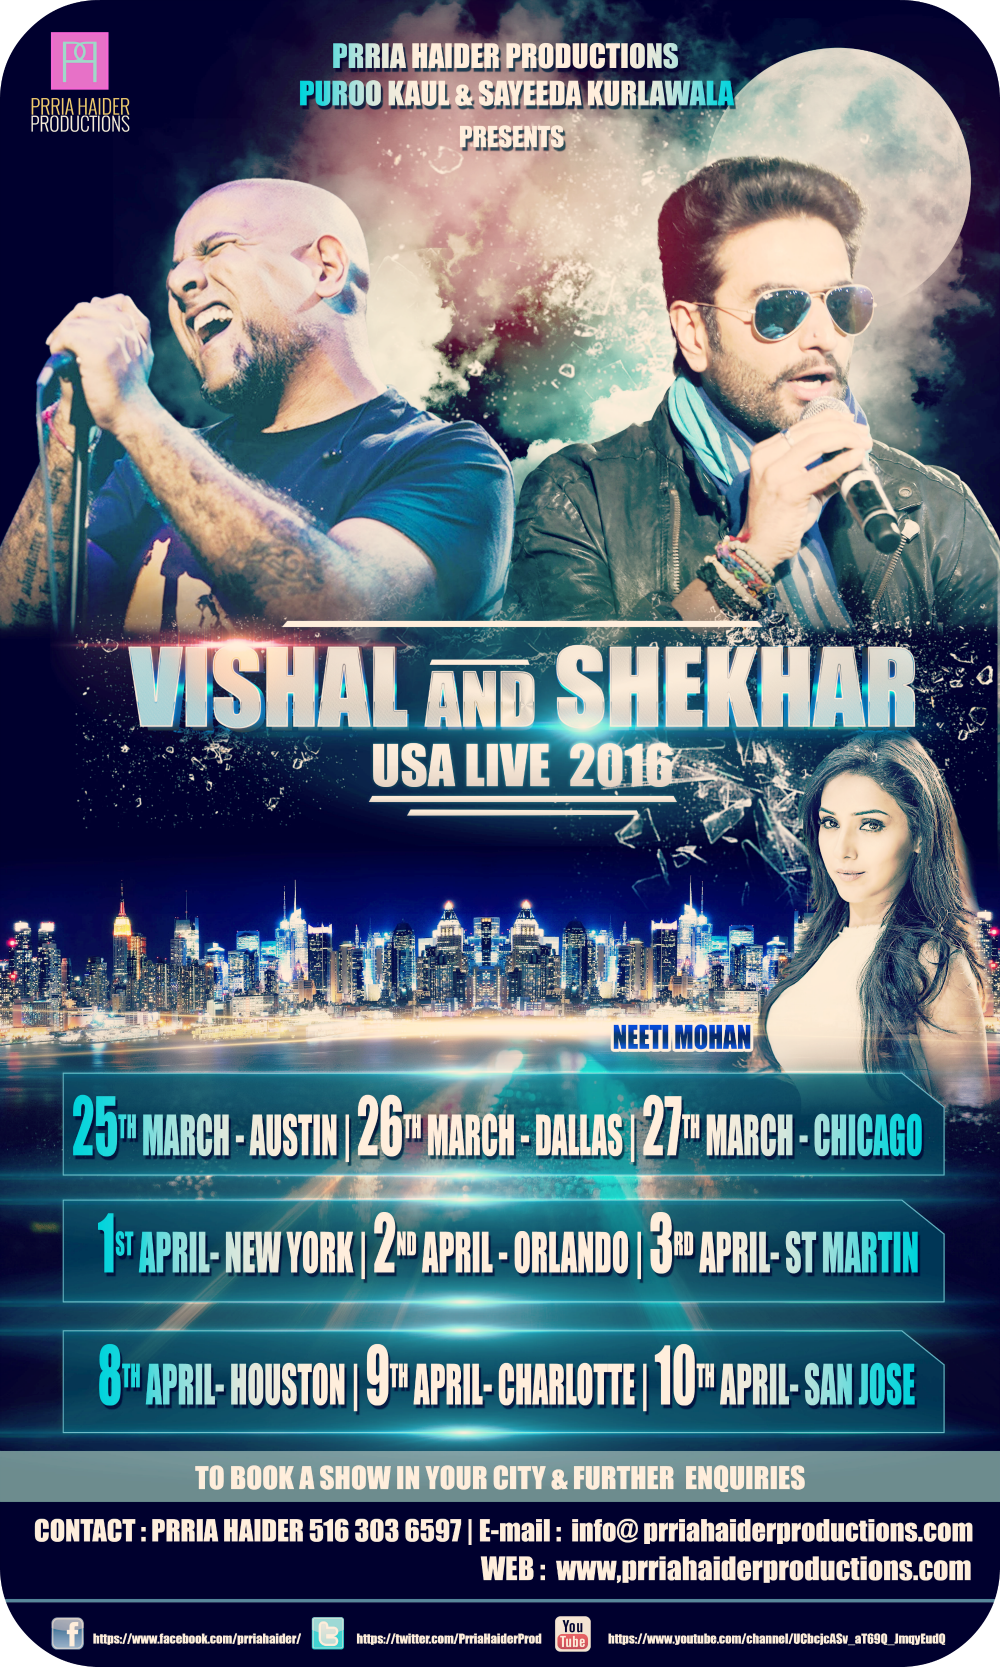 9 cities vishal and shekhar edited.png